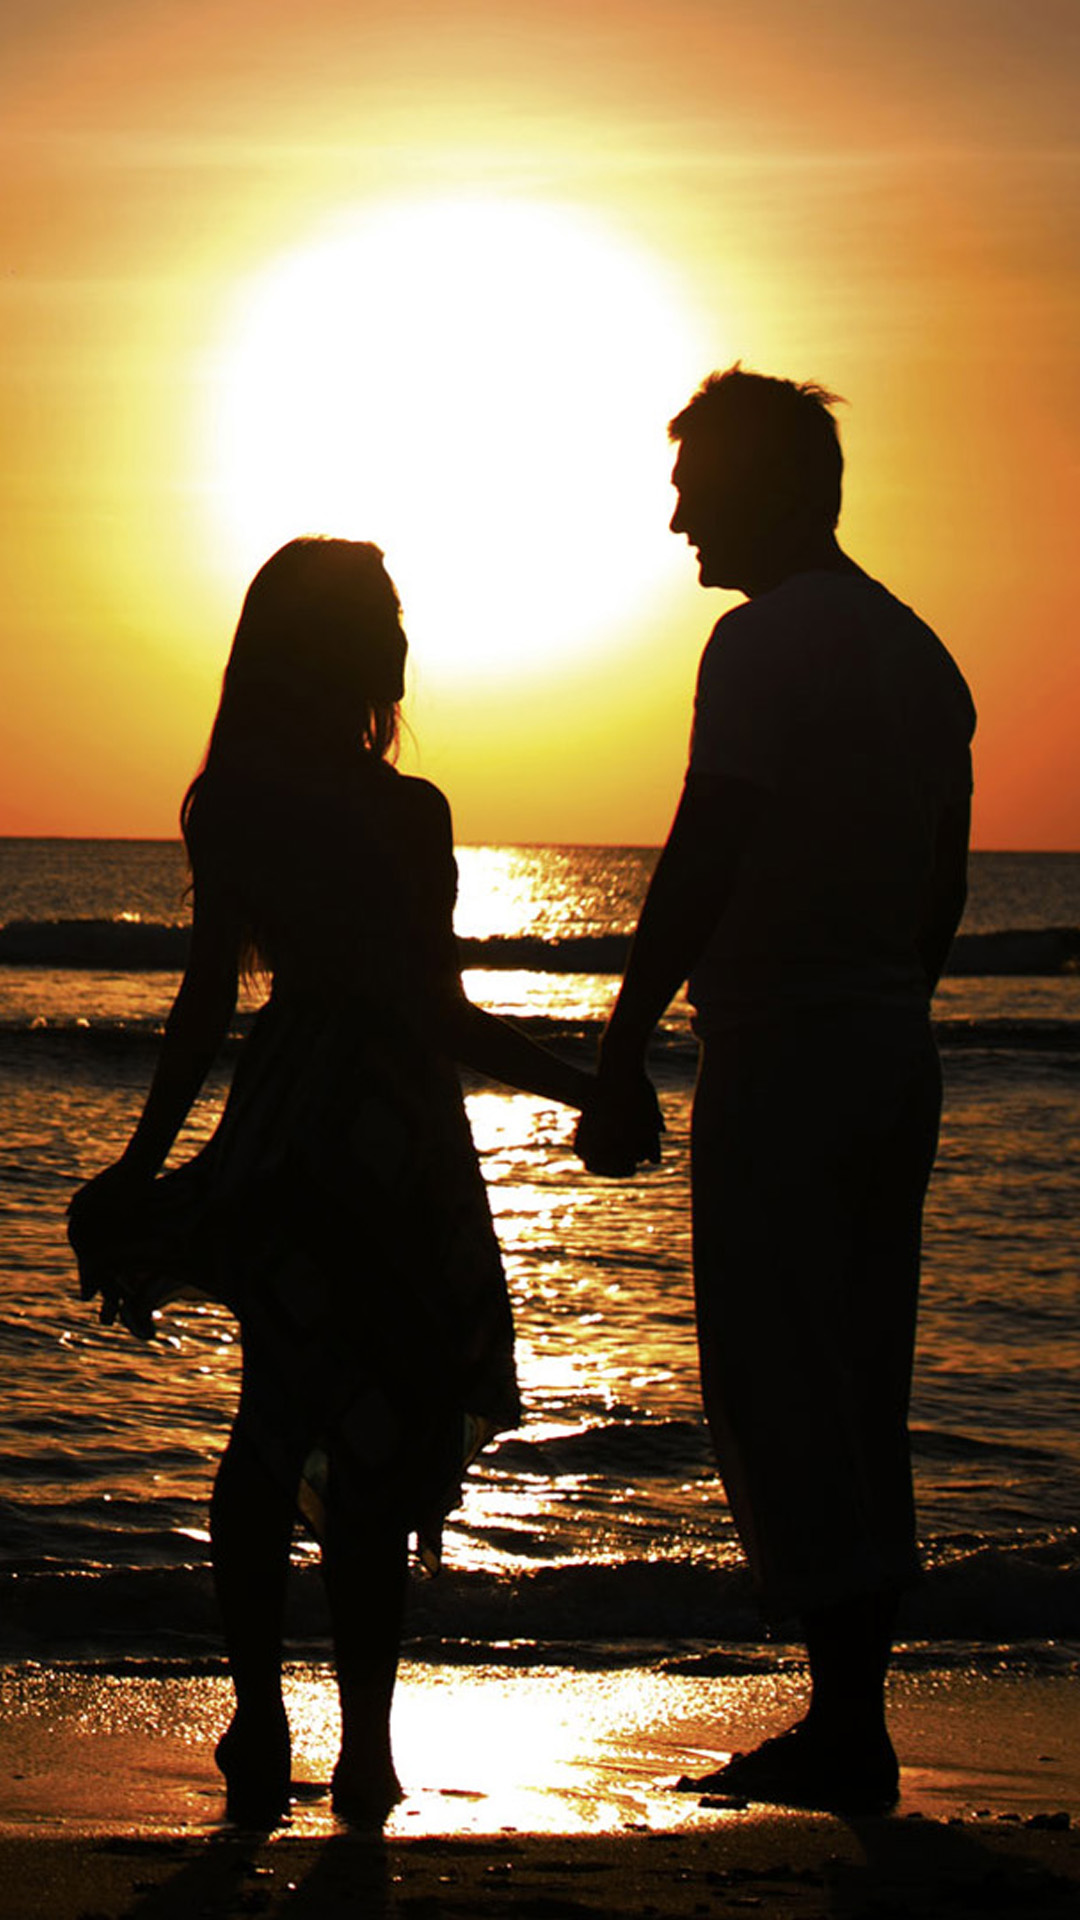 Top Wallpaper Couple Android Phone - Sunset-Beach-Couple-iphone-6-plus-wallpaper  Collection_439783 .jpg